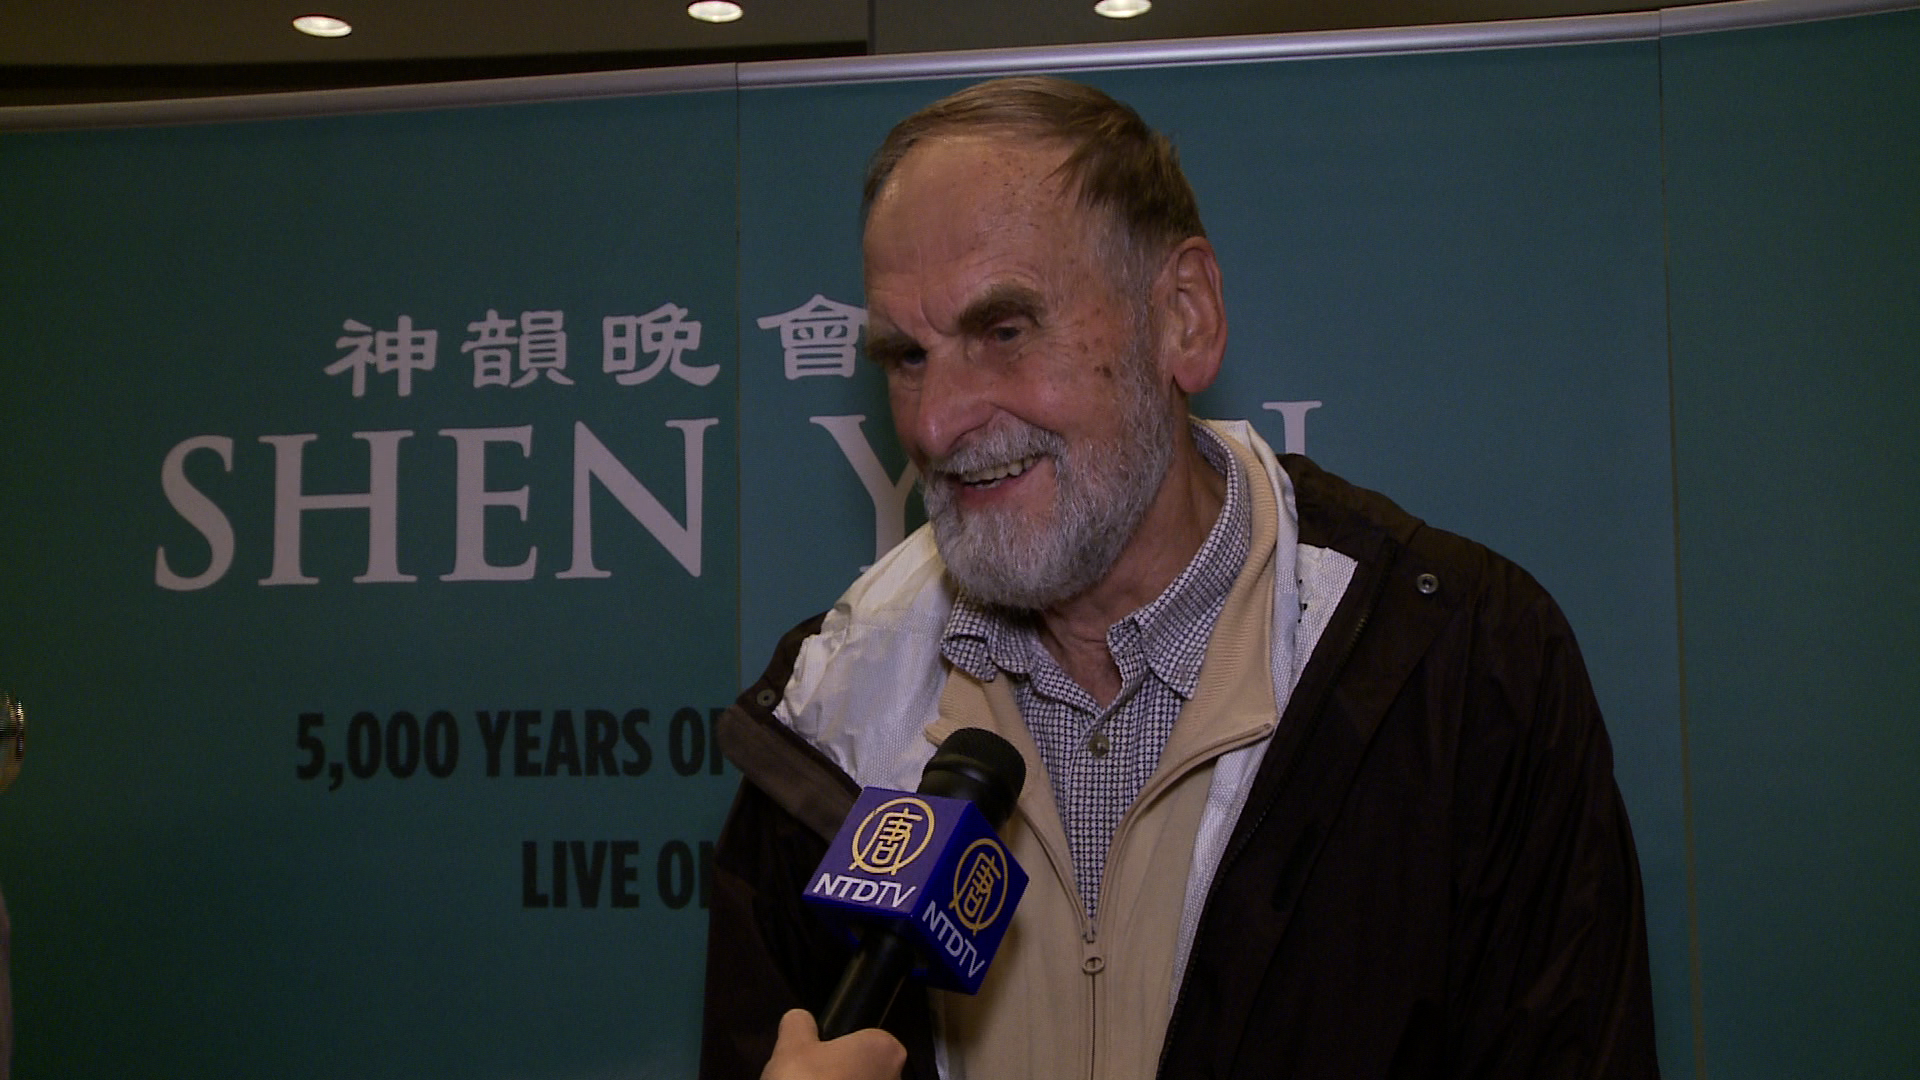 Choral Conductor Praises Shen Yun's Blending of Western and Chinese Instruments